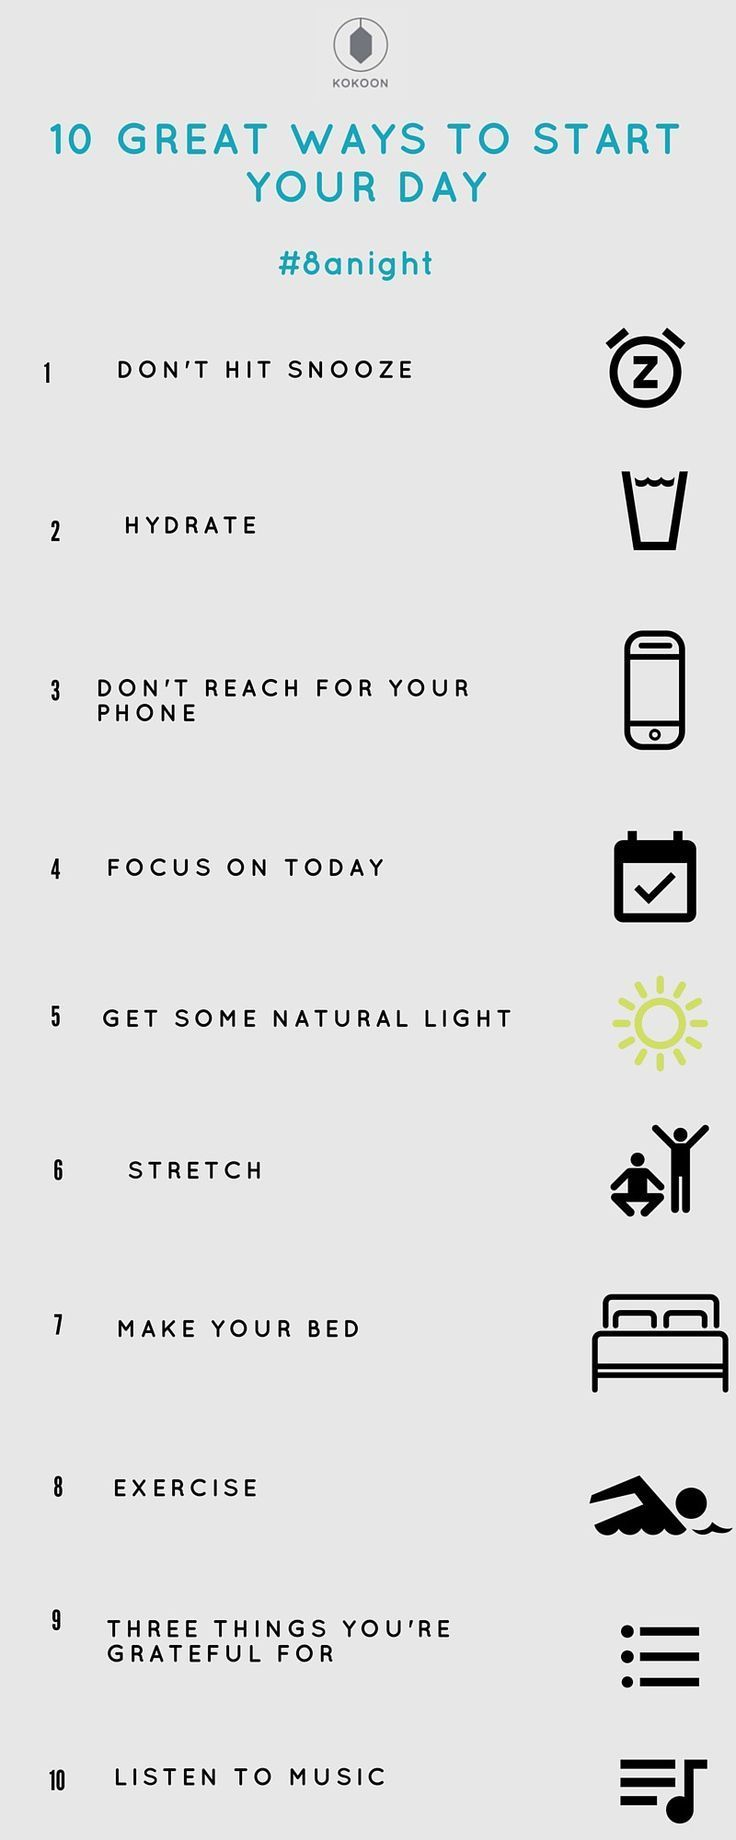 10 great ways to start your day — 30 day sleep challenges — #8anight  Don't hit snooze As tempting as it is to get those extra couple of minutes in bed, it is actually doing you more harm than good.  https://medium.com/30-day-sleep-challenges/10-great-ways-to-start-your-day-a5cdadc517ed#.mwnugv6gx